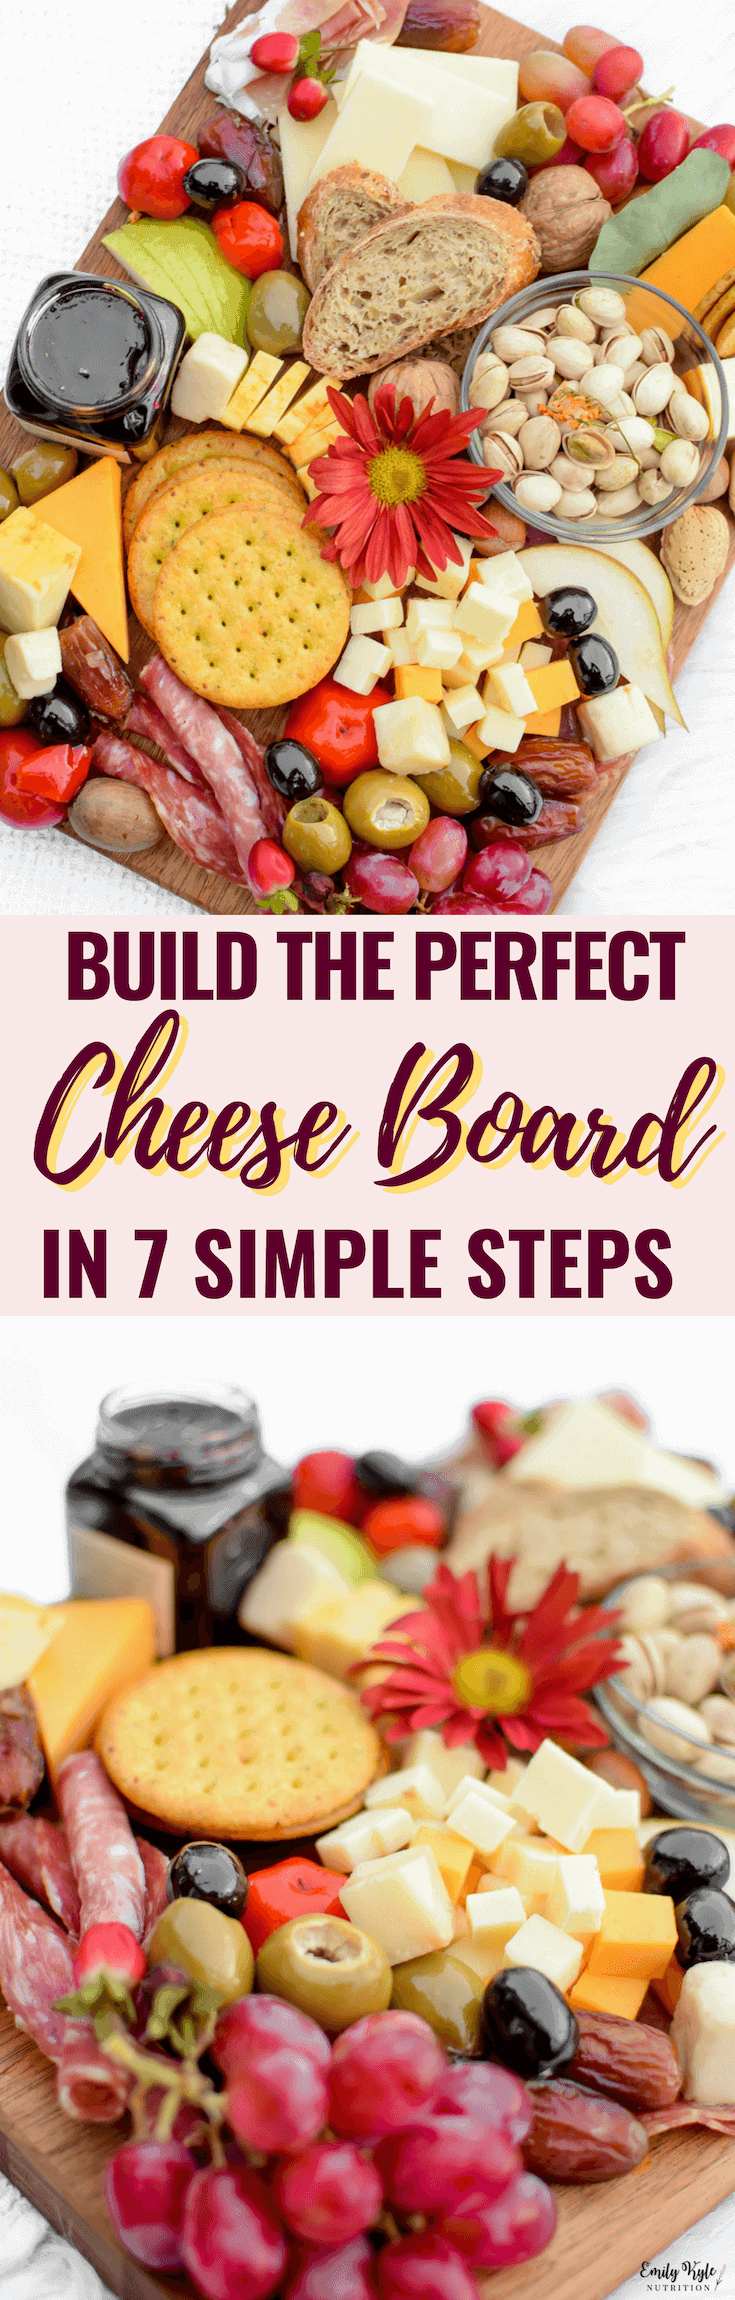 Create your own customized cheese board with a vegetarian option by following these 7 Steps to Building the Perfect Cheese Board!